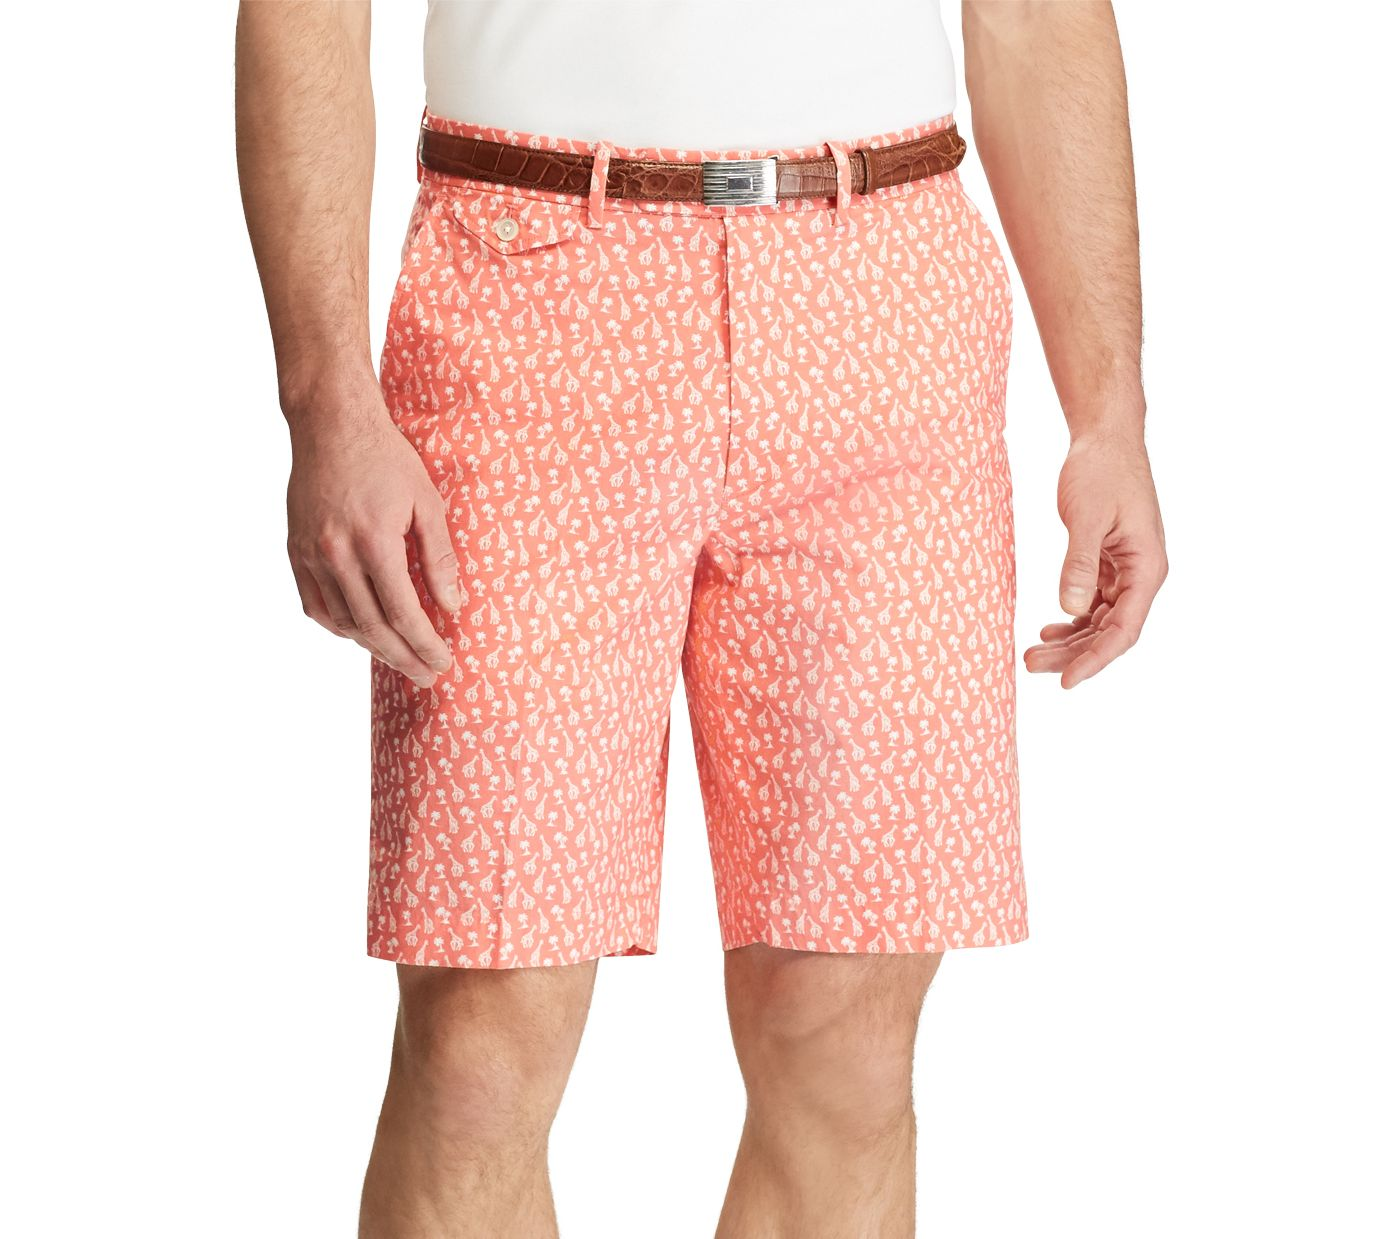 Polo Golf Men's Printed Stretch Twill Golf Shorts